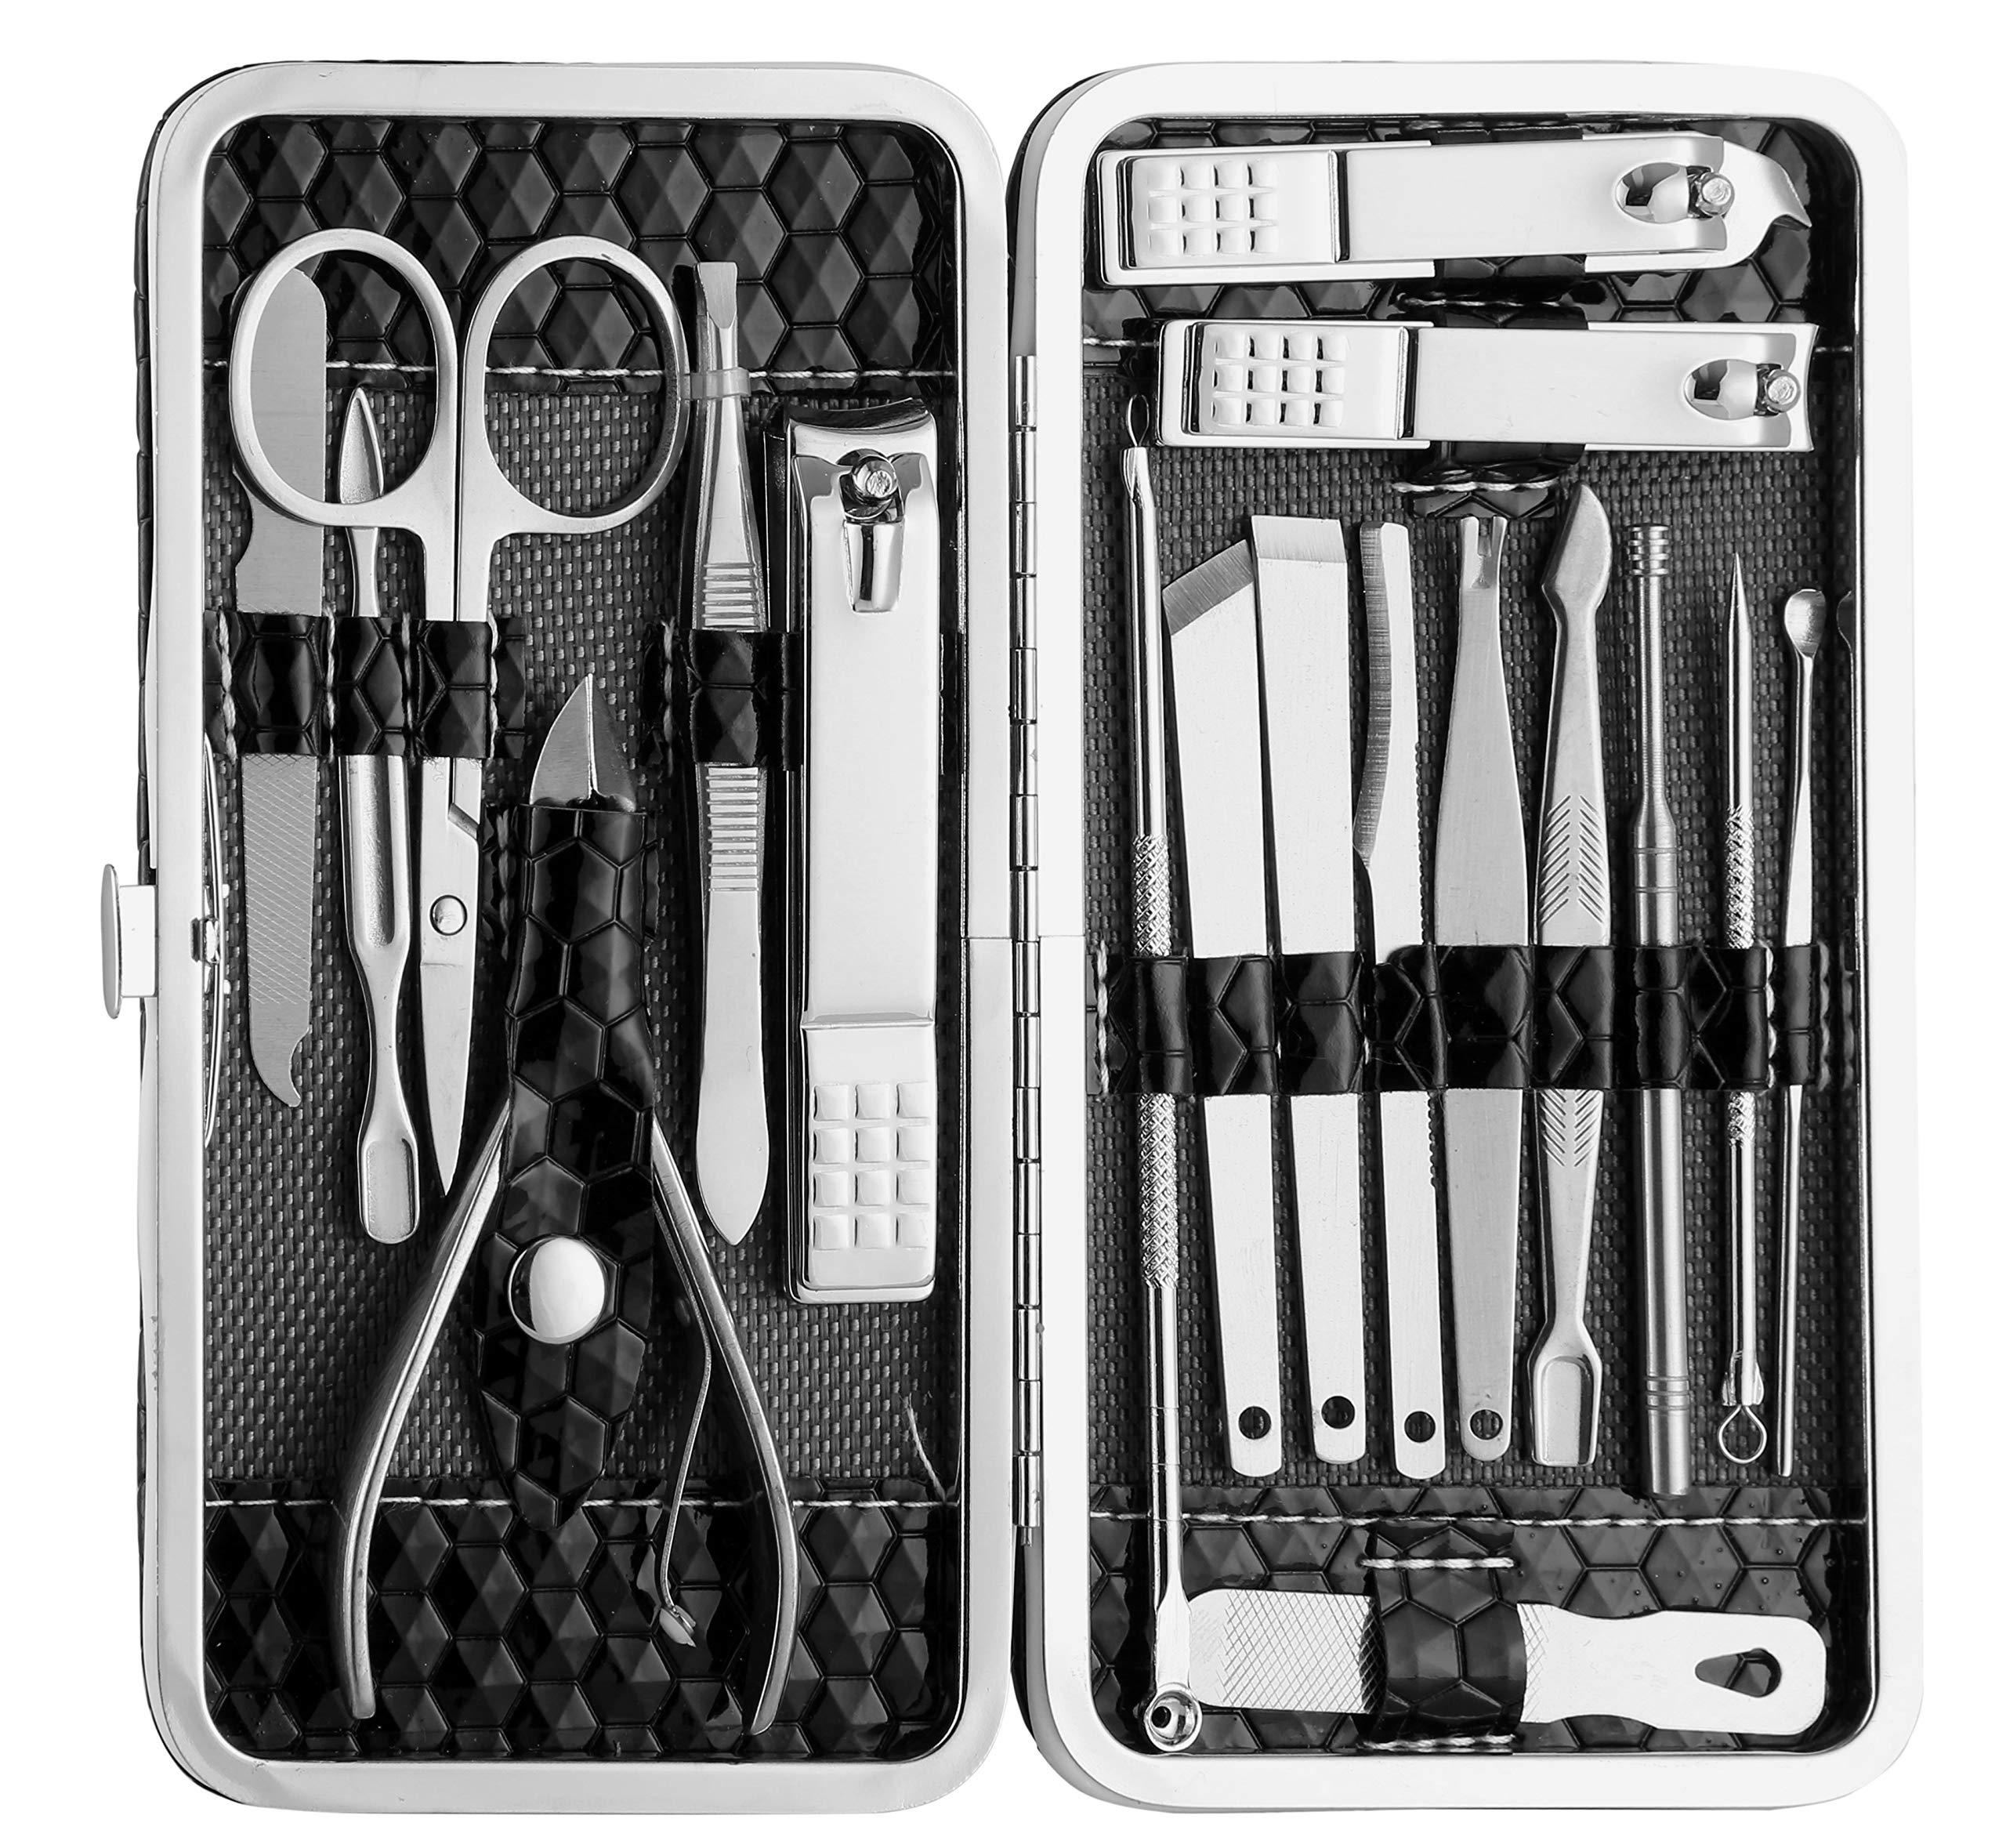 Foolzy Stainless Steel 18-in-1 Nail Utility Grooming Travel Set with Leather Case product image